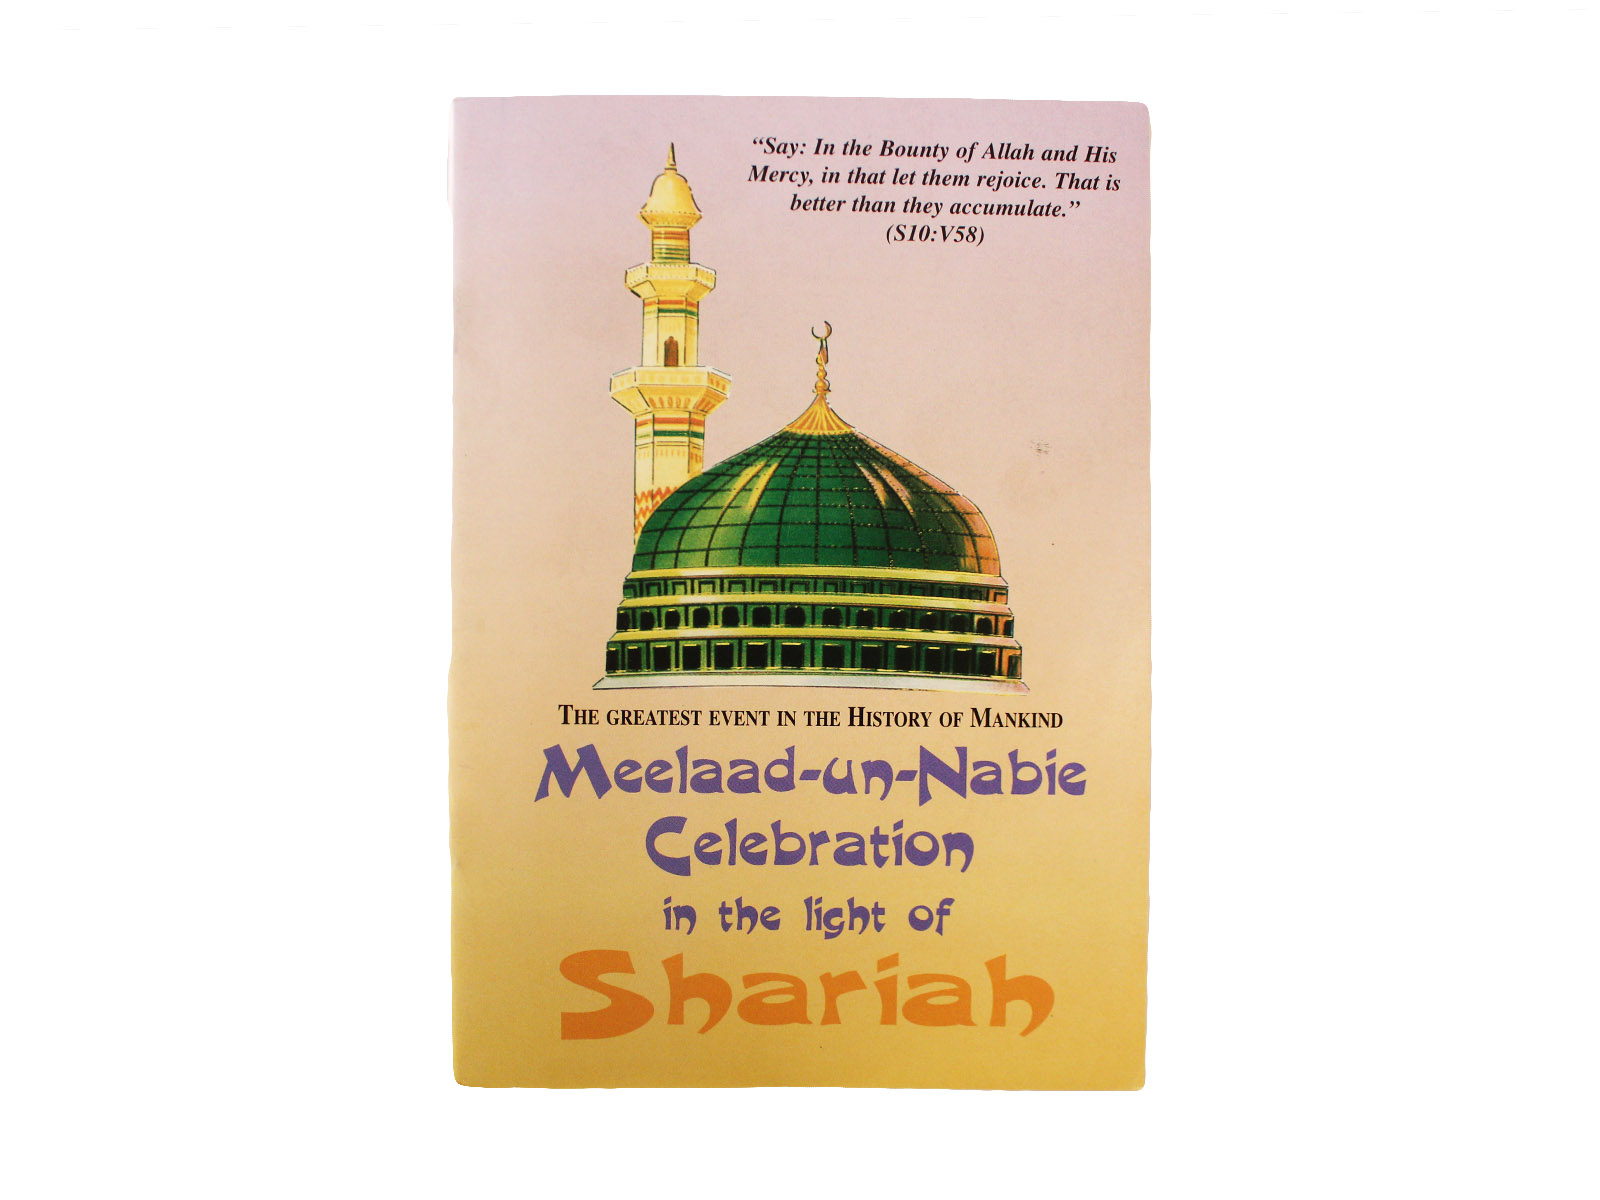 Darul Uloom Pretoria Meelaad-un-Nabie Celebration in the light of Shariah book, By Soutul Islam Publishing, Compiled by Mufti MA Hazarvi